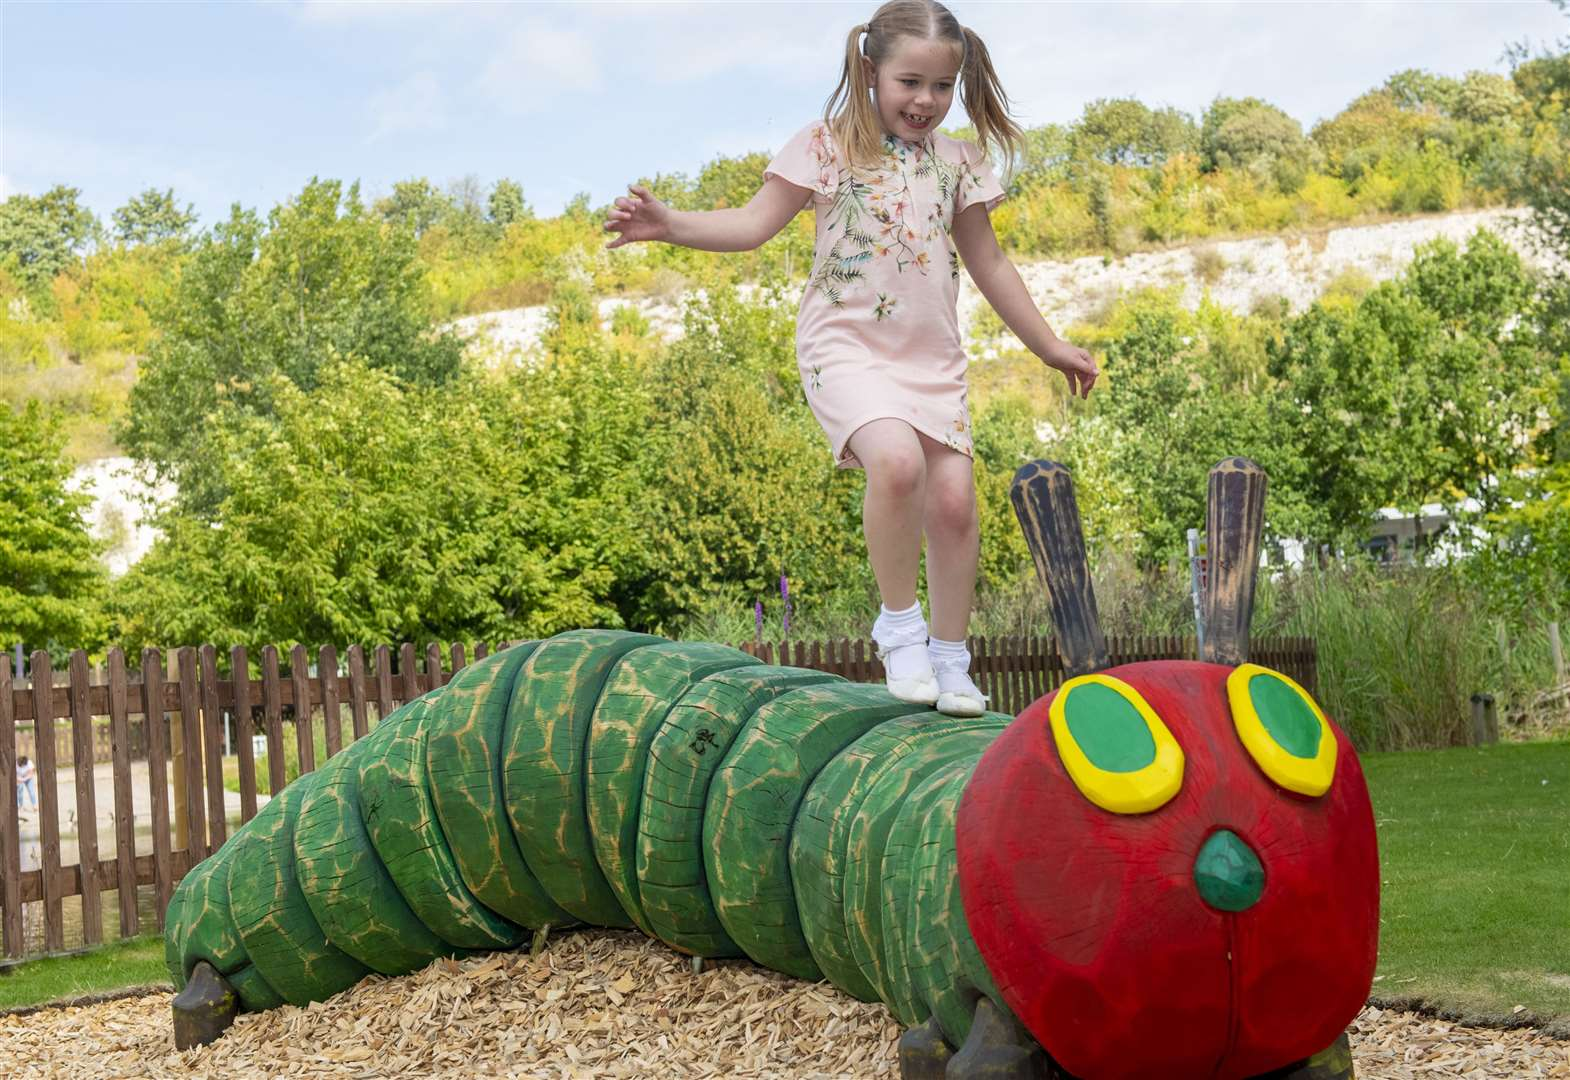 Hungry Caterpillar arrives at nature trail